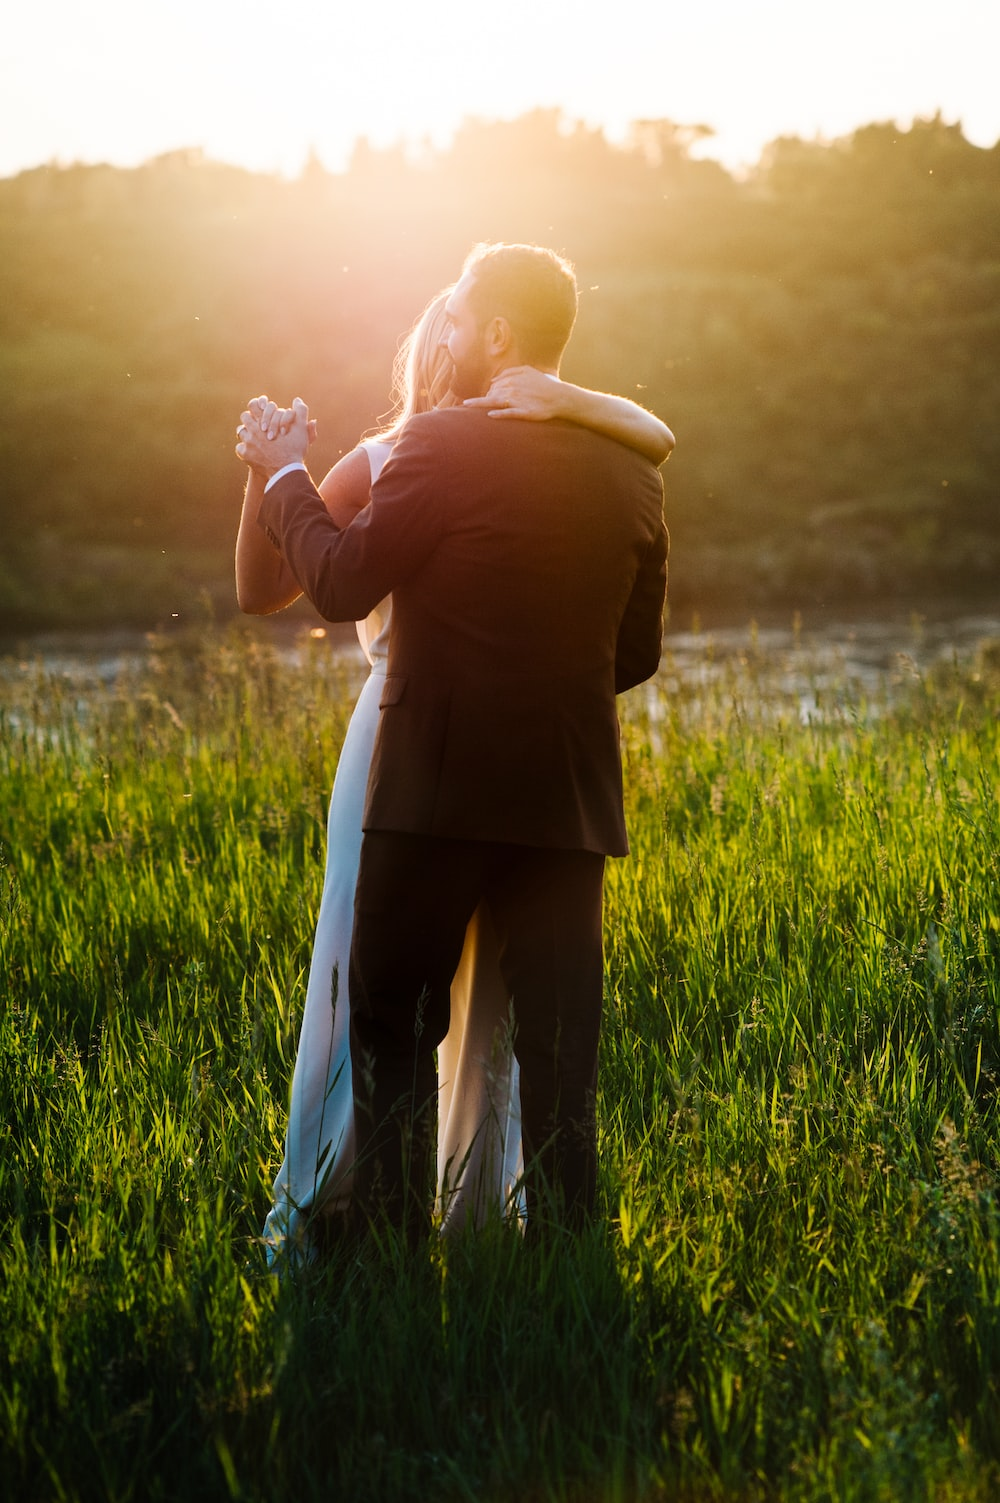 man and woman dancing on green grass field